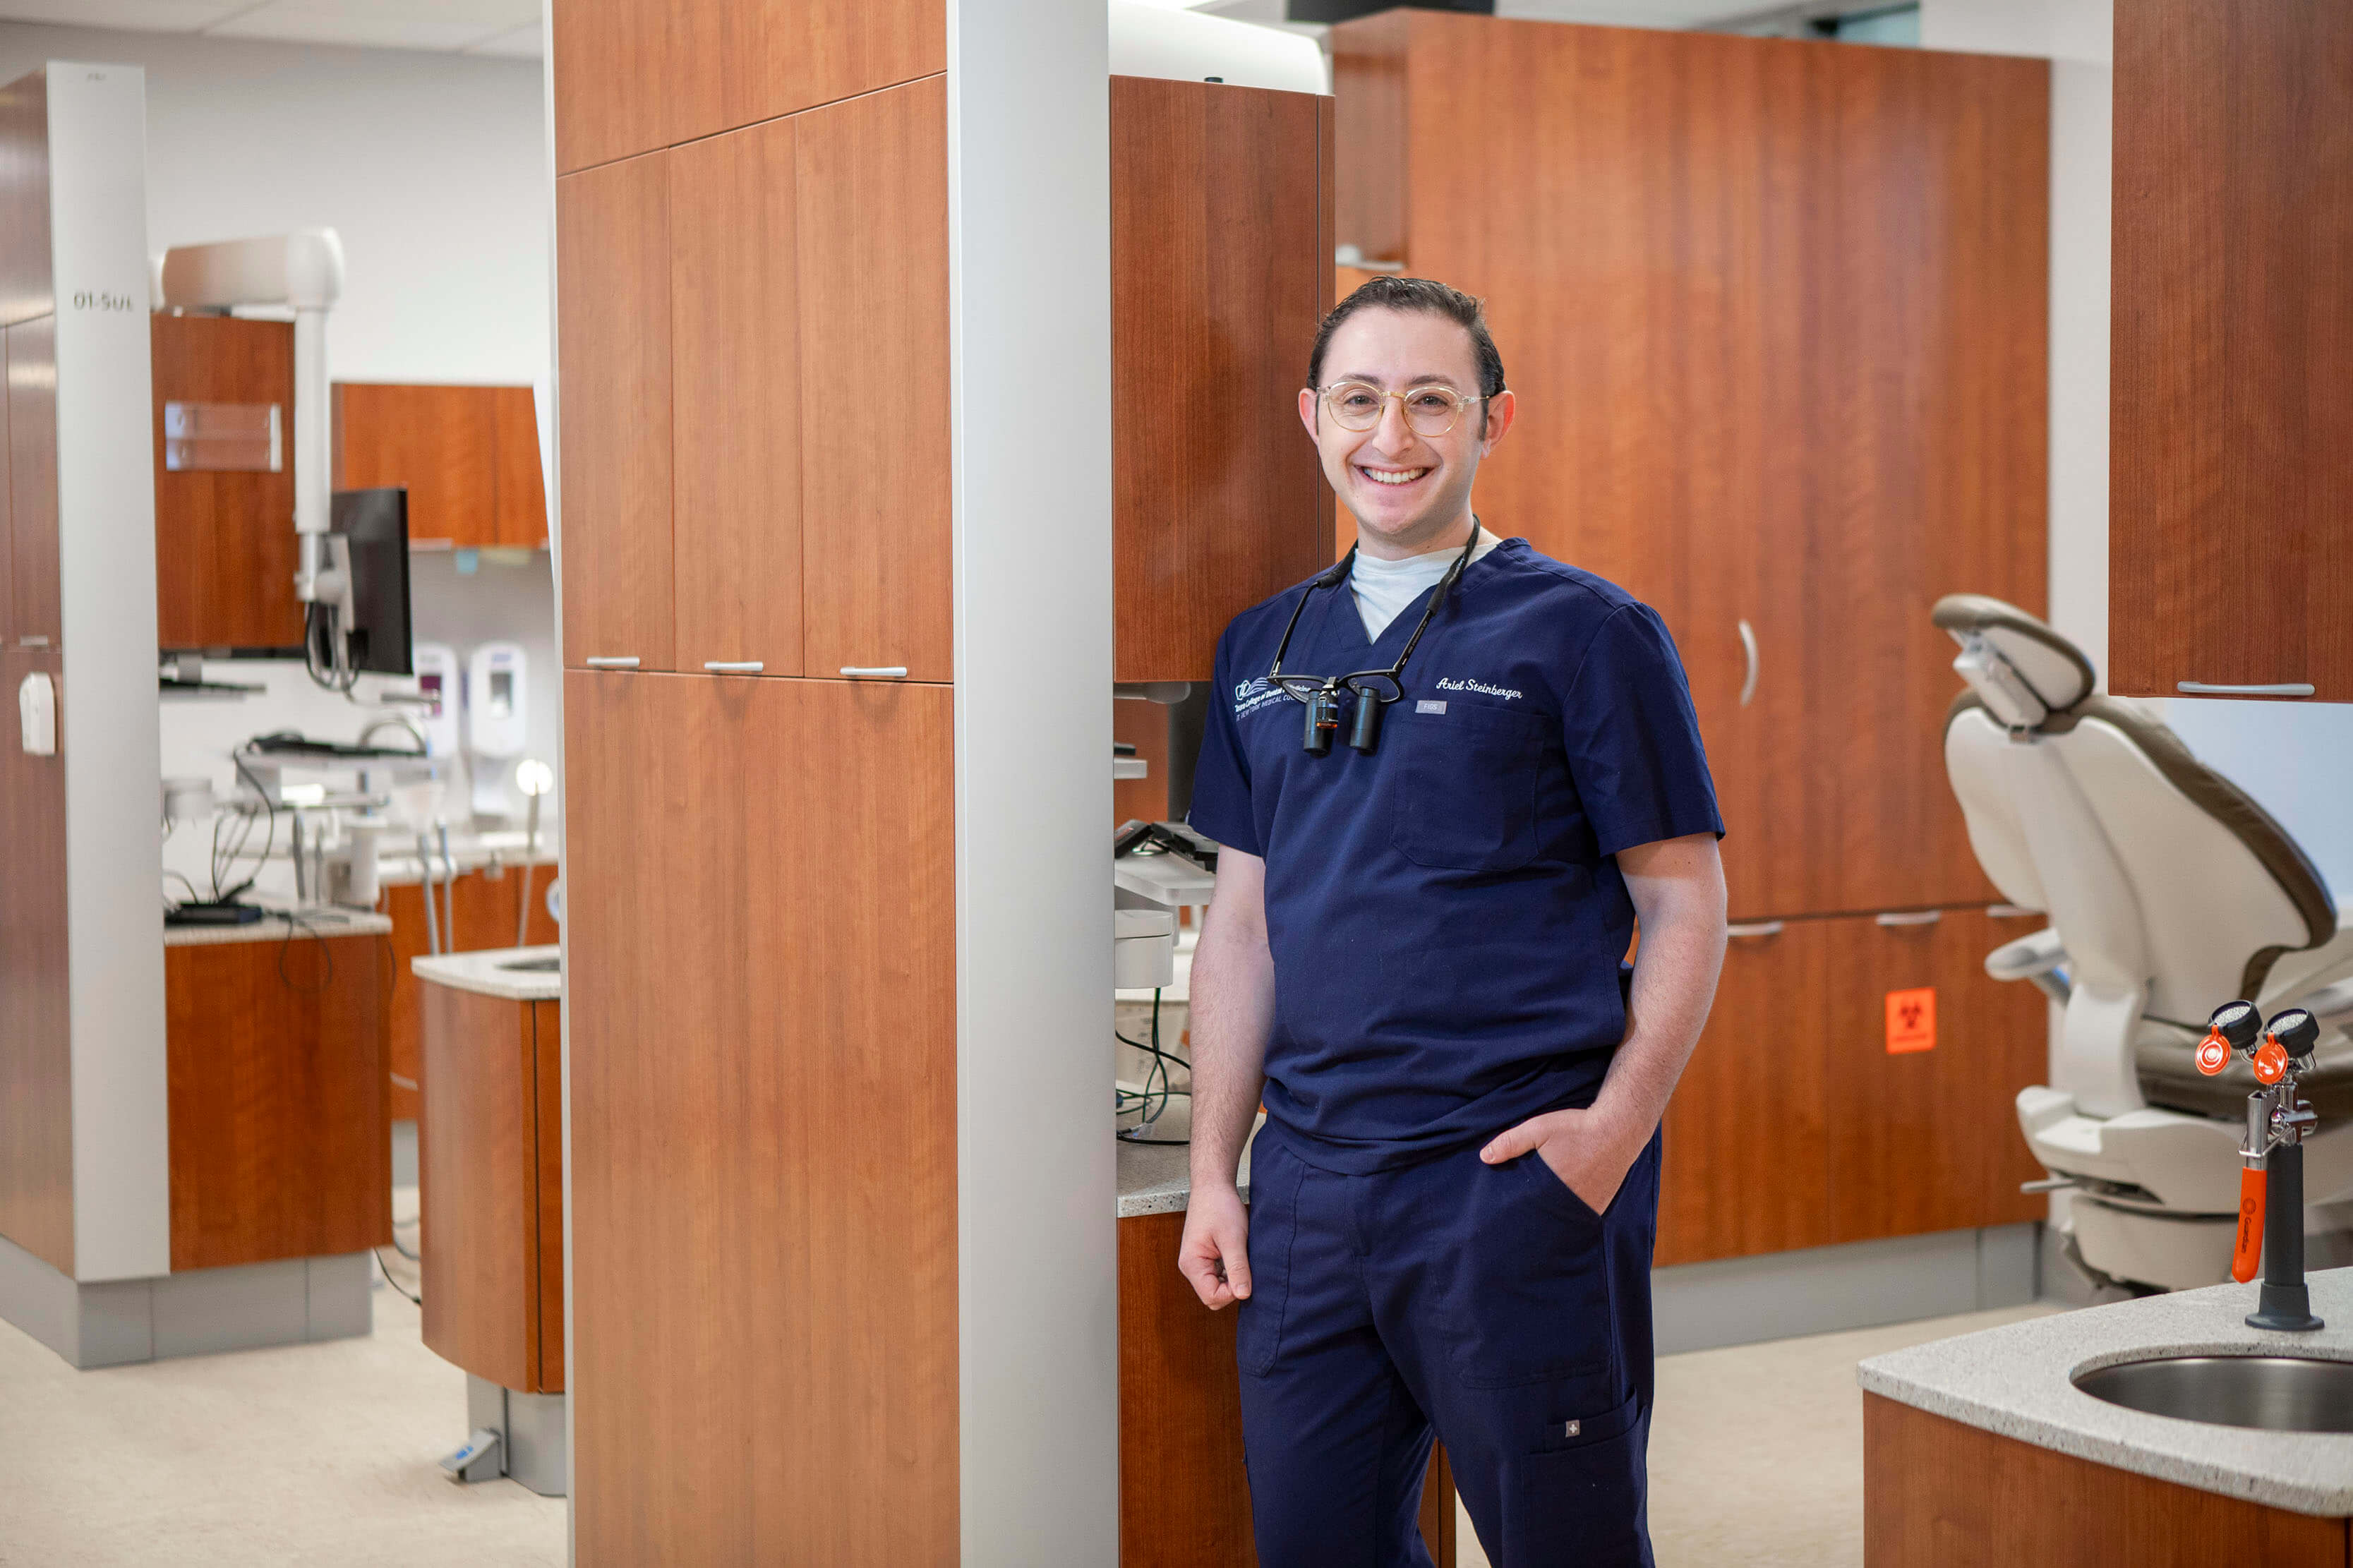 Ariel Steinberger, an alum of Lander College for Men and a fourth year student at Touro College of Dental Medicine.